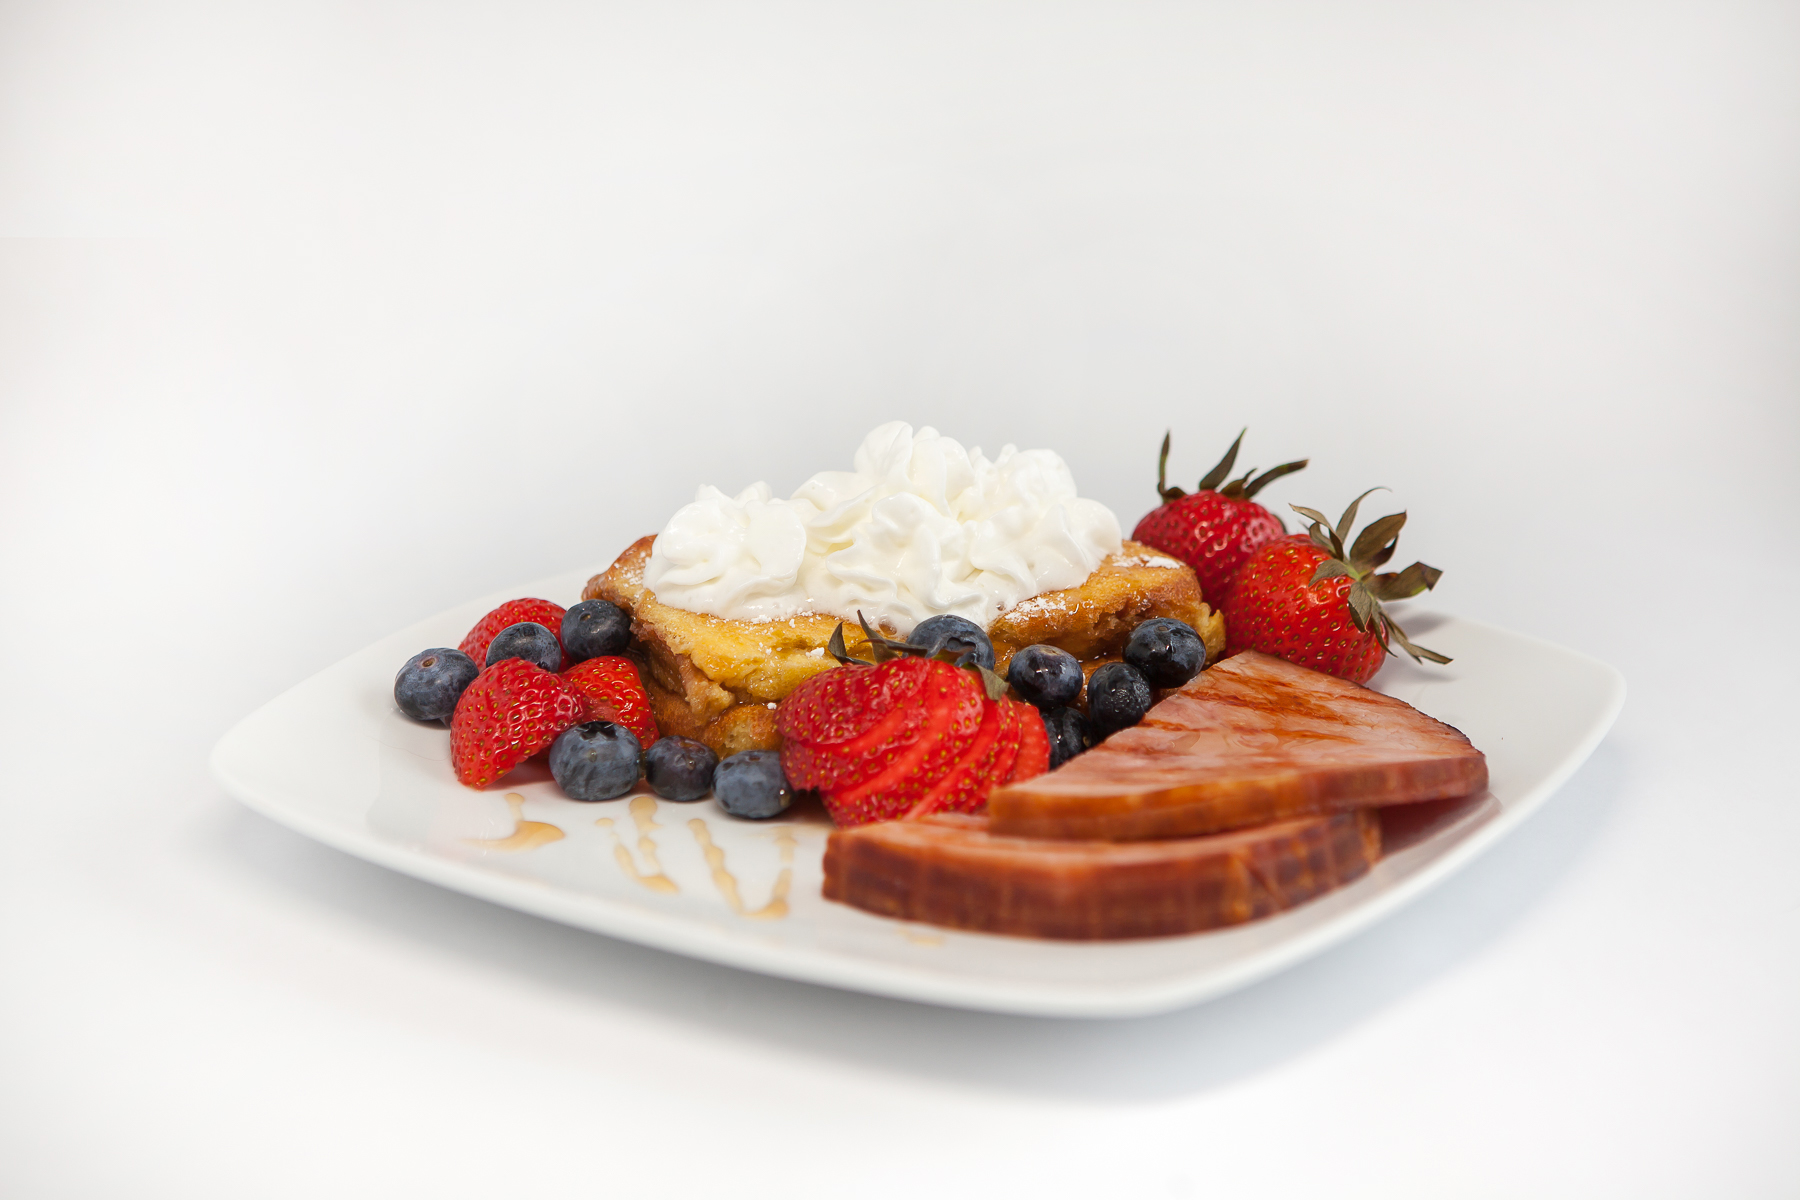 food photography and styling for Creme Brulee french toast, ham and fresh berries with whipped cream